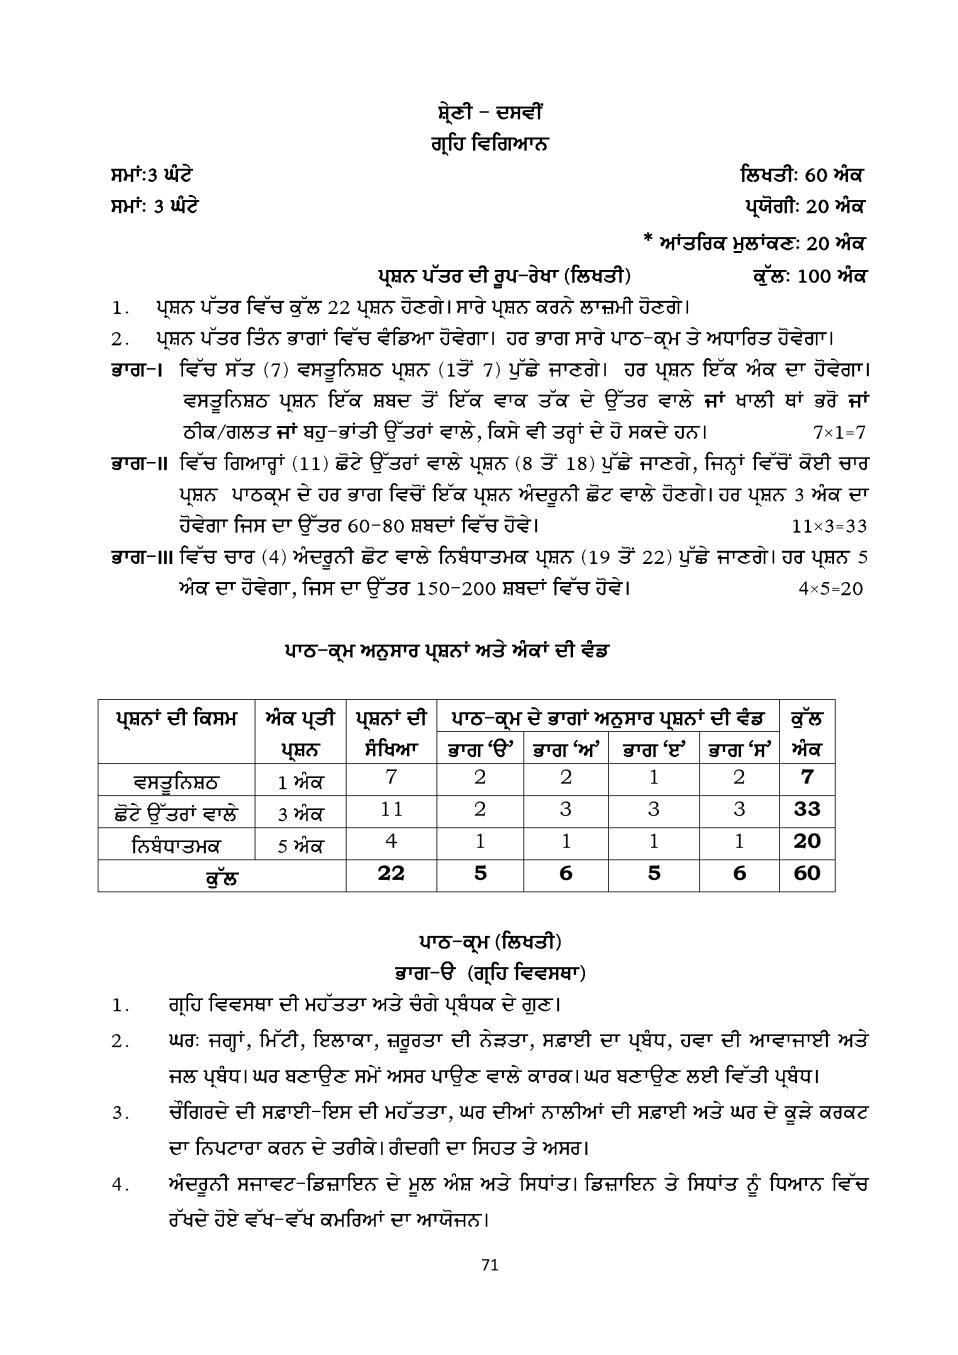 PSEB Syllabus 2020-21 for Class 10 Home Science - Page 1